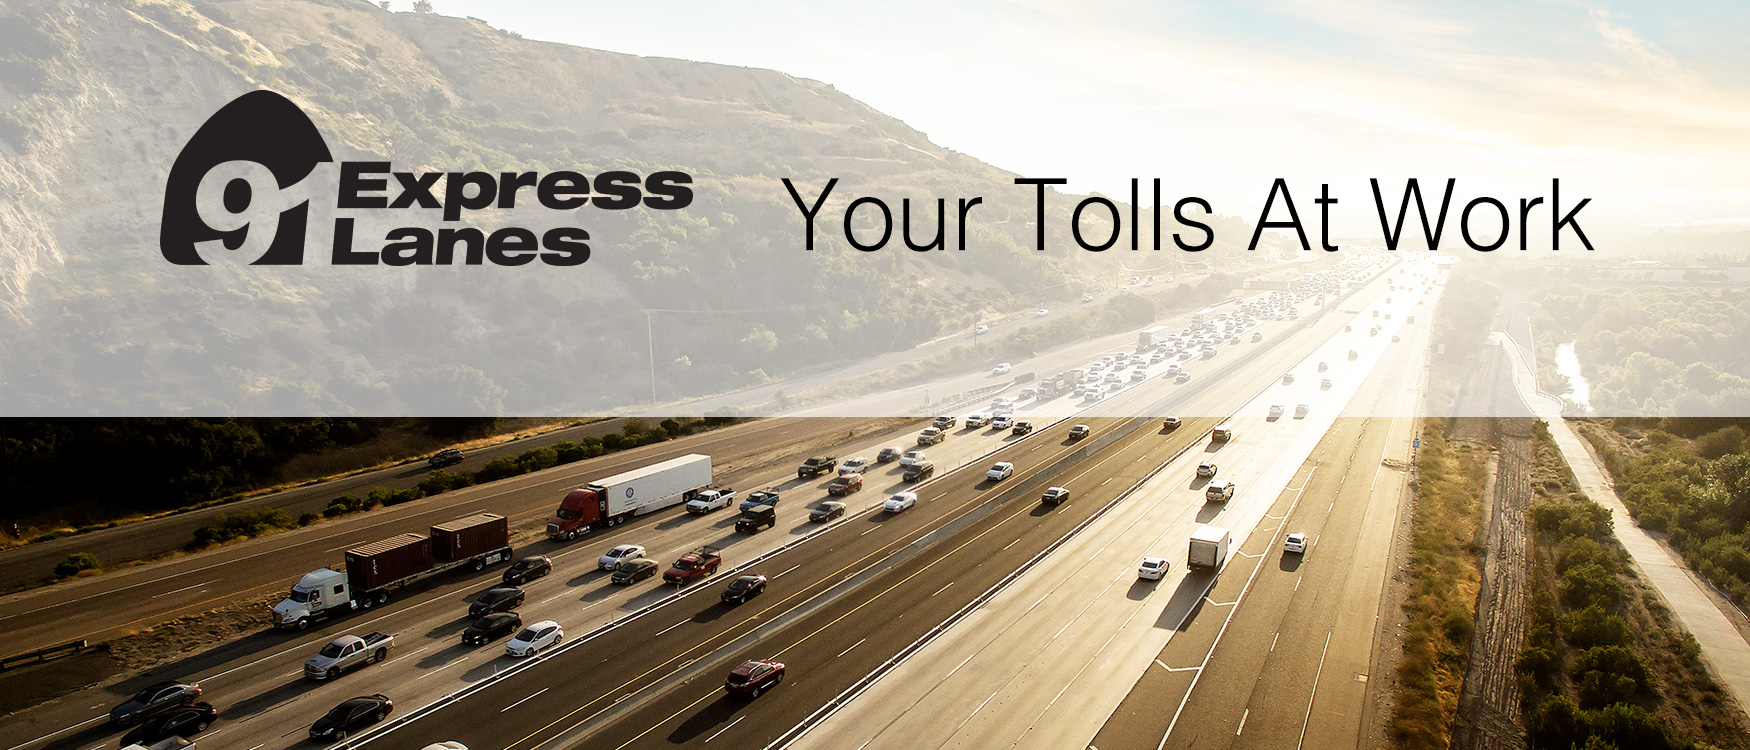 91 Express Lanes - Your tools at work